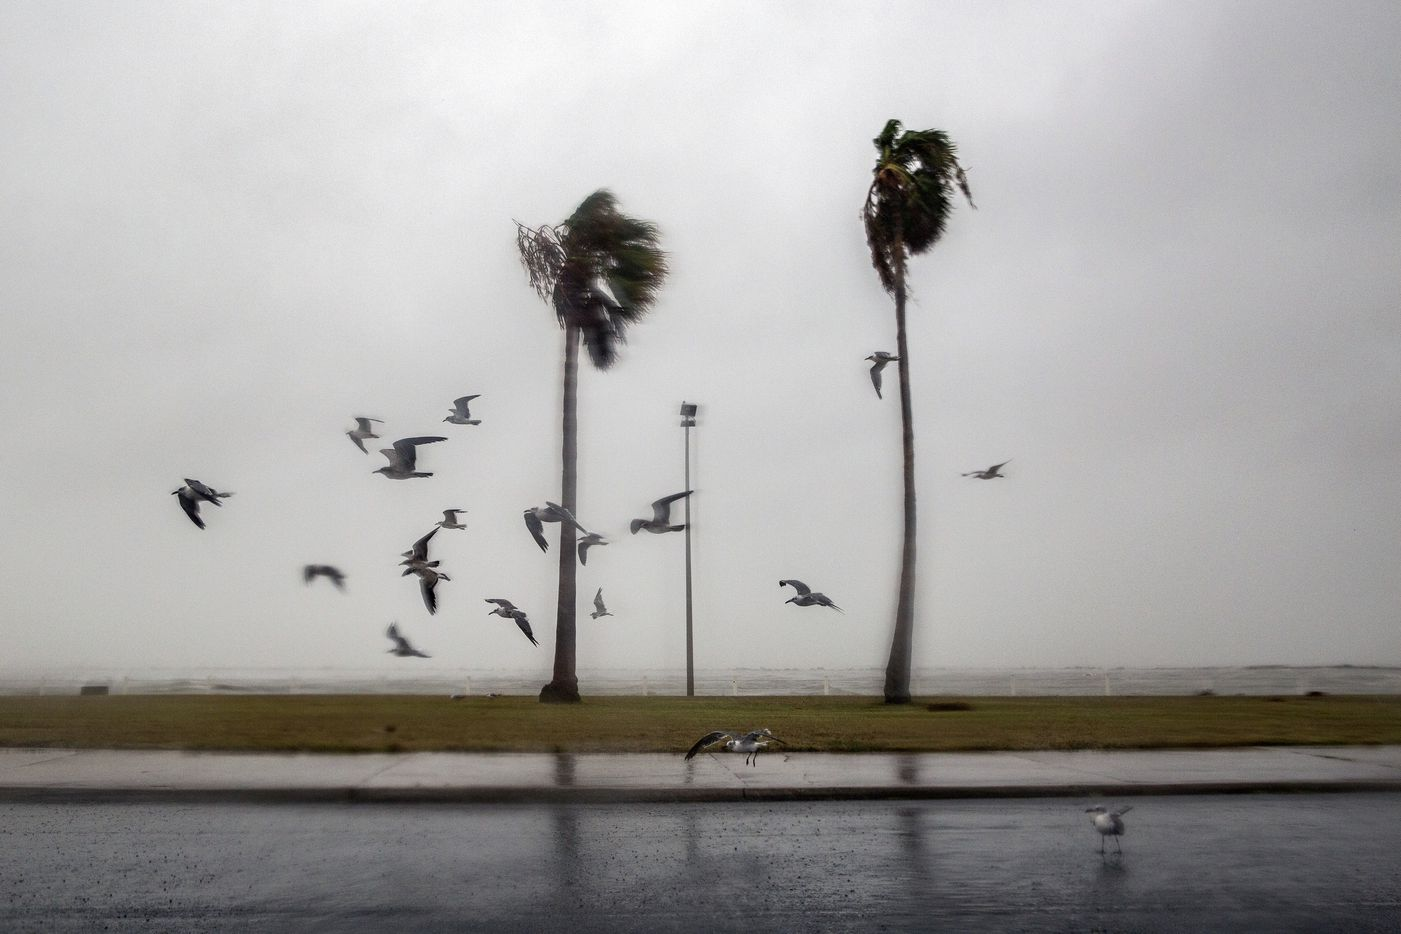 Birds take flight as heavy rains and winds battered the shoreline in Corpus Christi, Texas, hours before Hurricane Harvey was expected to make landfall, Aug. 25, 2017. Harvey strengthened to a Category 4 storm on Friday evening as it approached the Texas Gulf Coast.